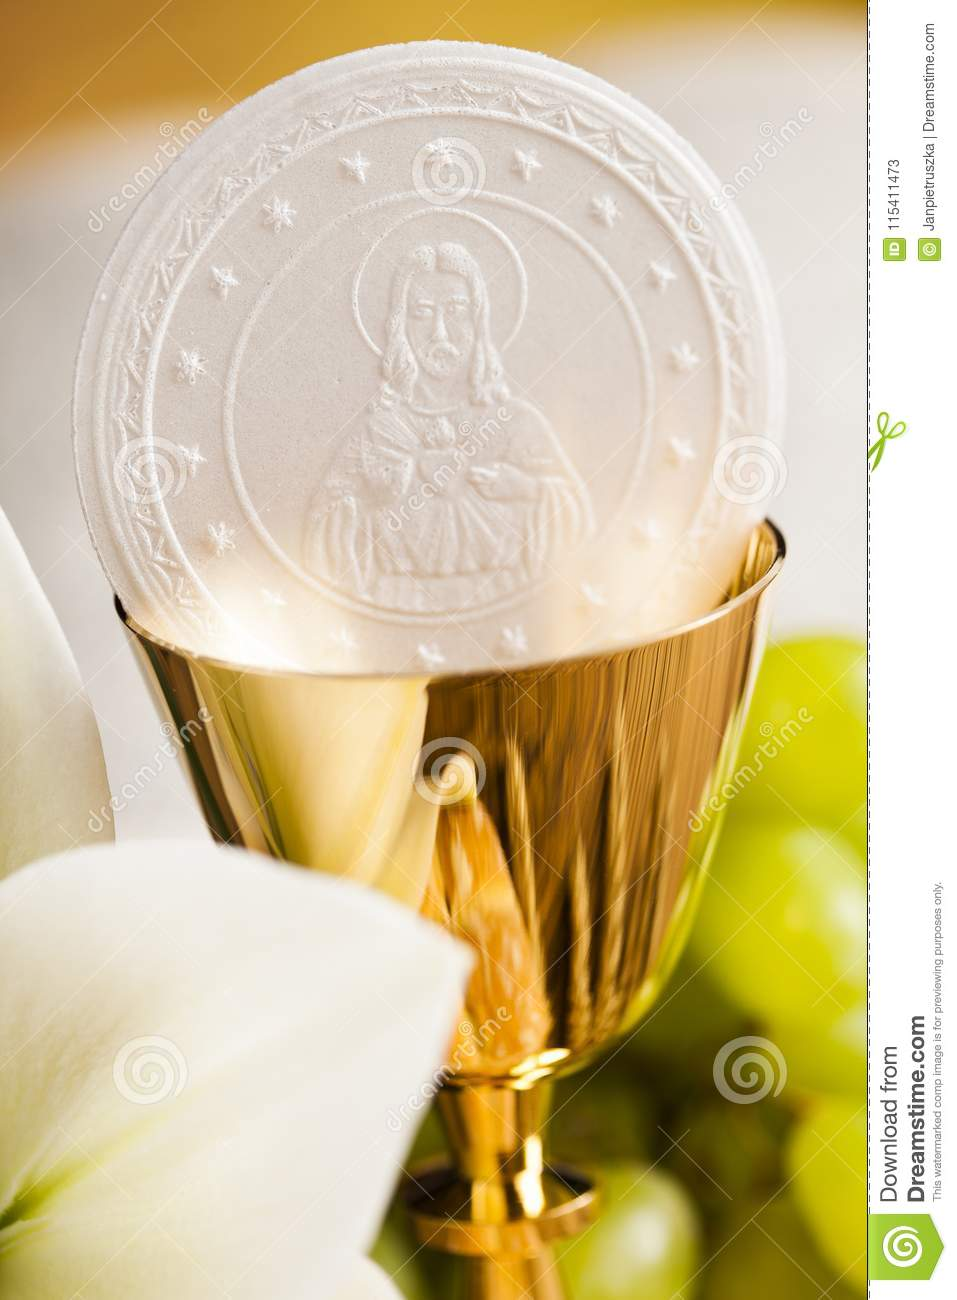 Holy Communion Bread Wine For Christianity Religion Stock Image